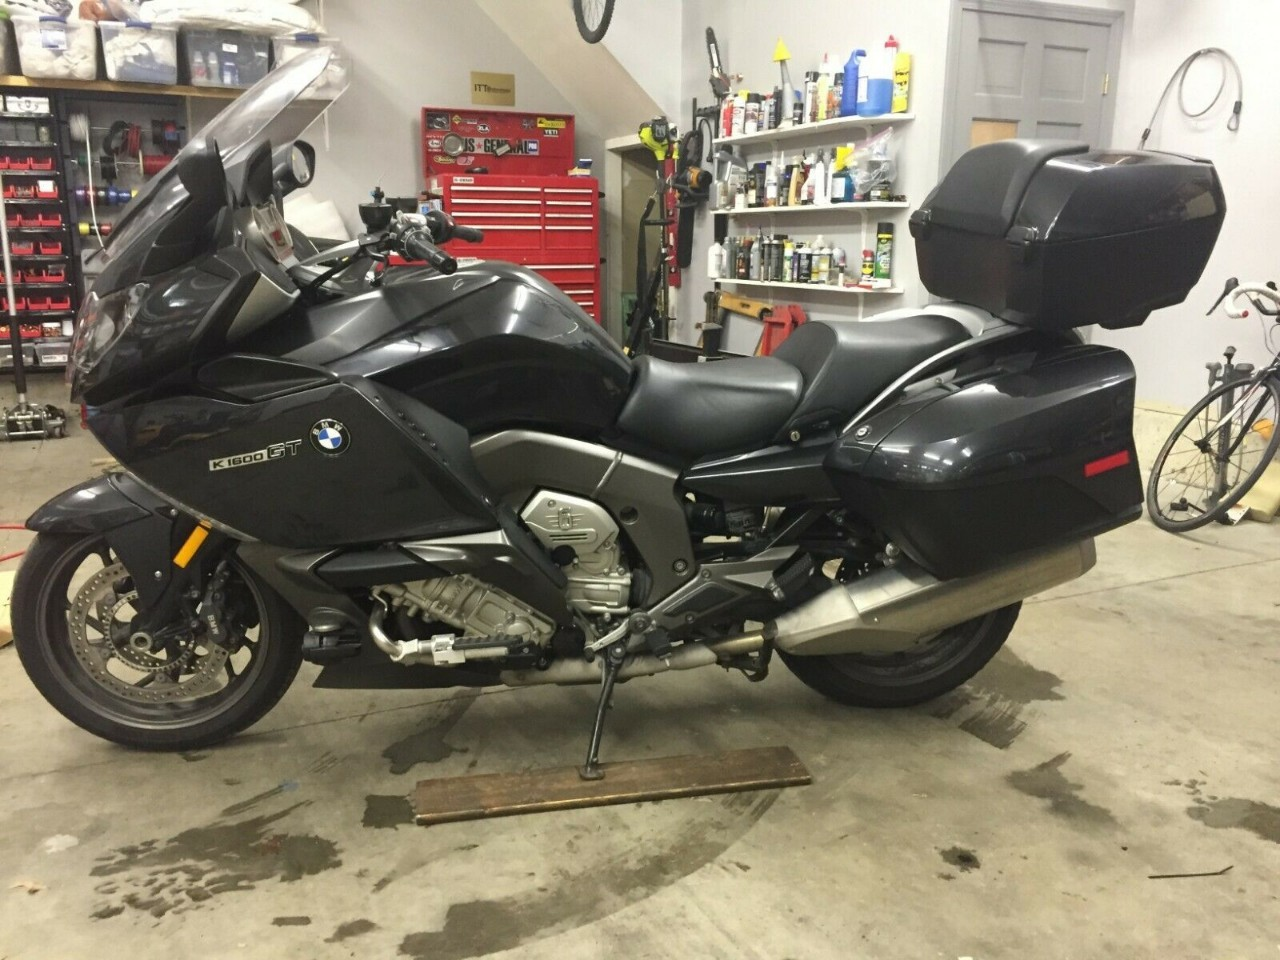 CT - Used Sport Touring Motorcycles For Sale - Cycle Trader